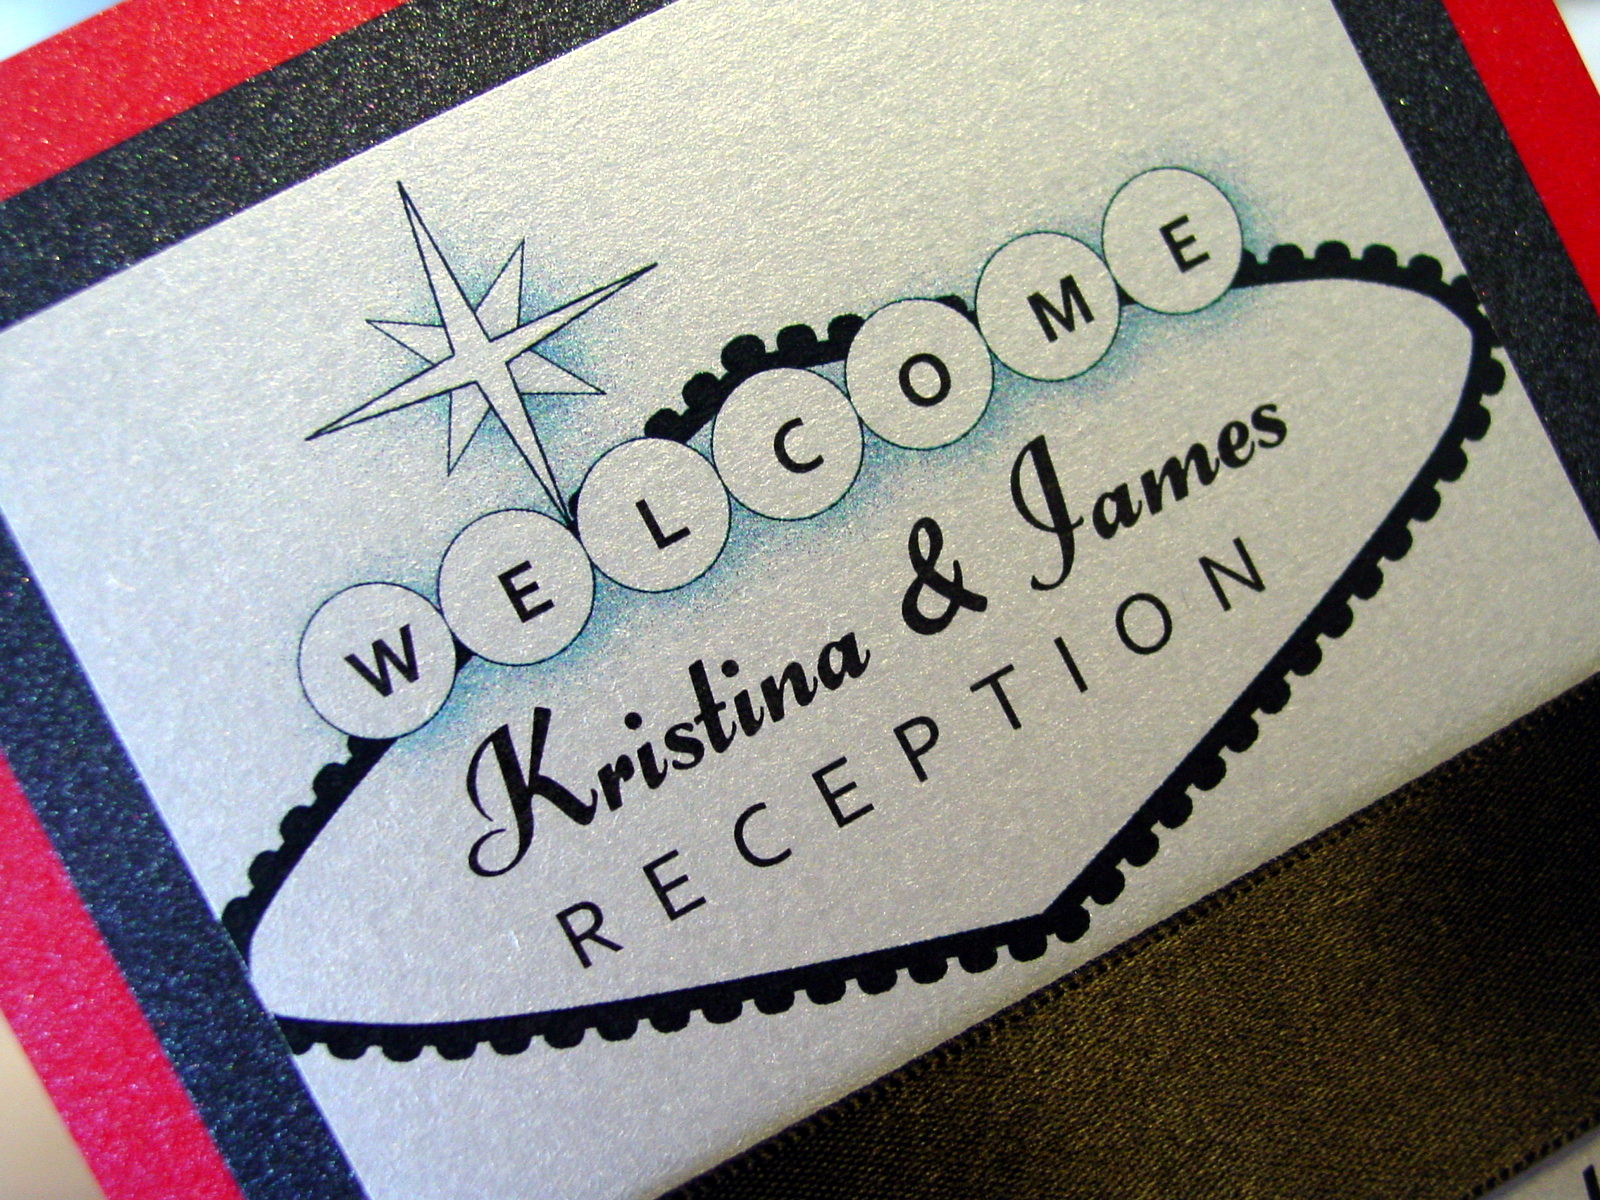 Kristina and James - Invitations